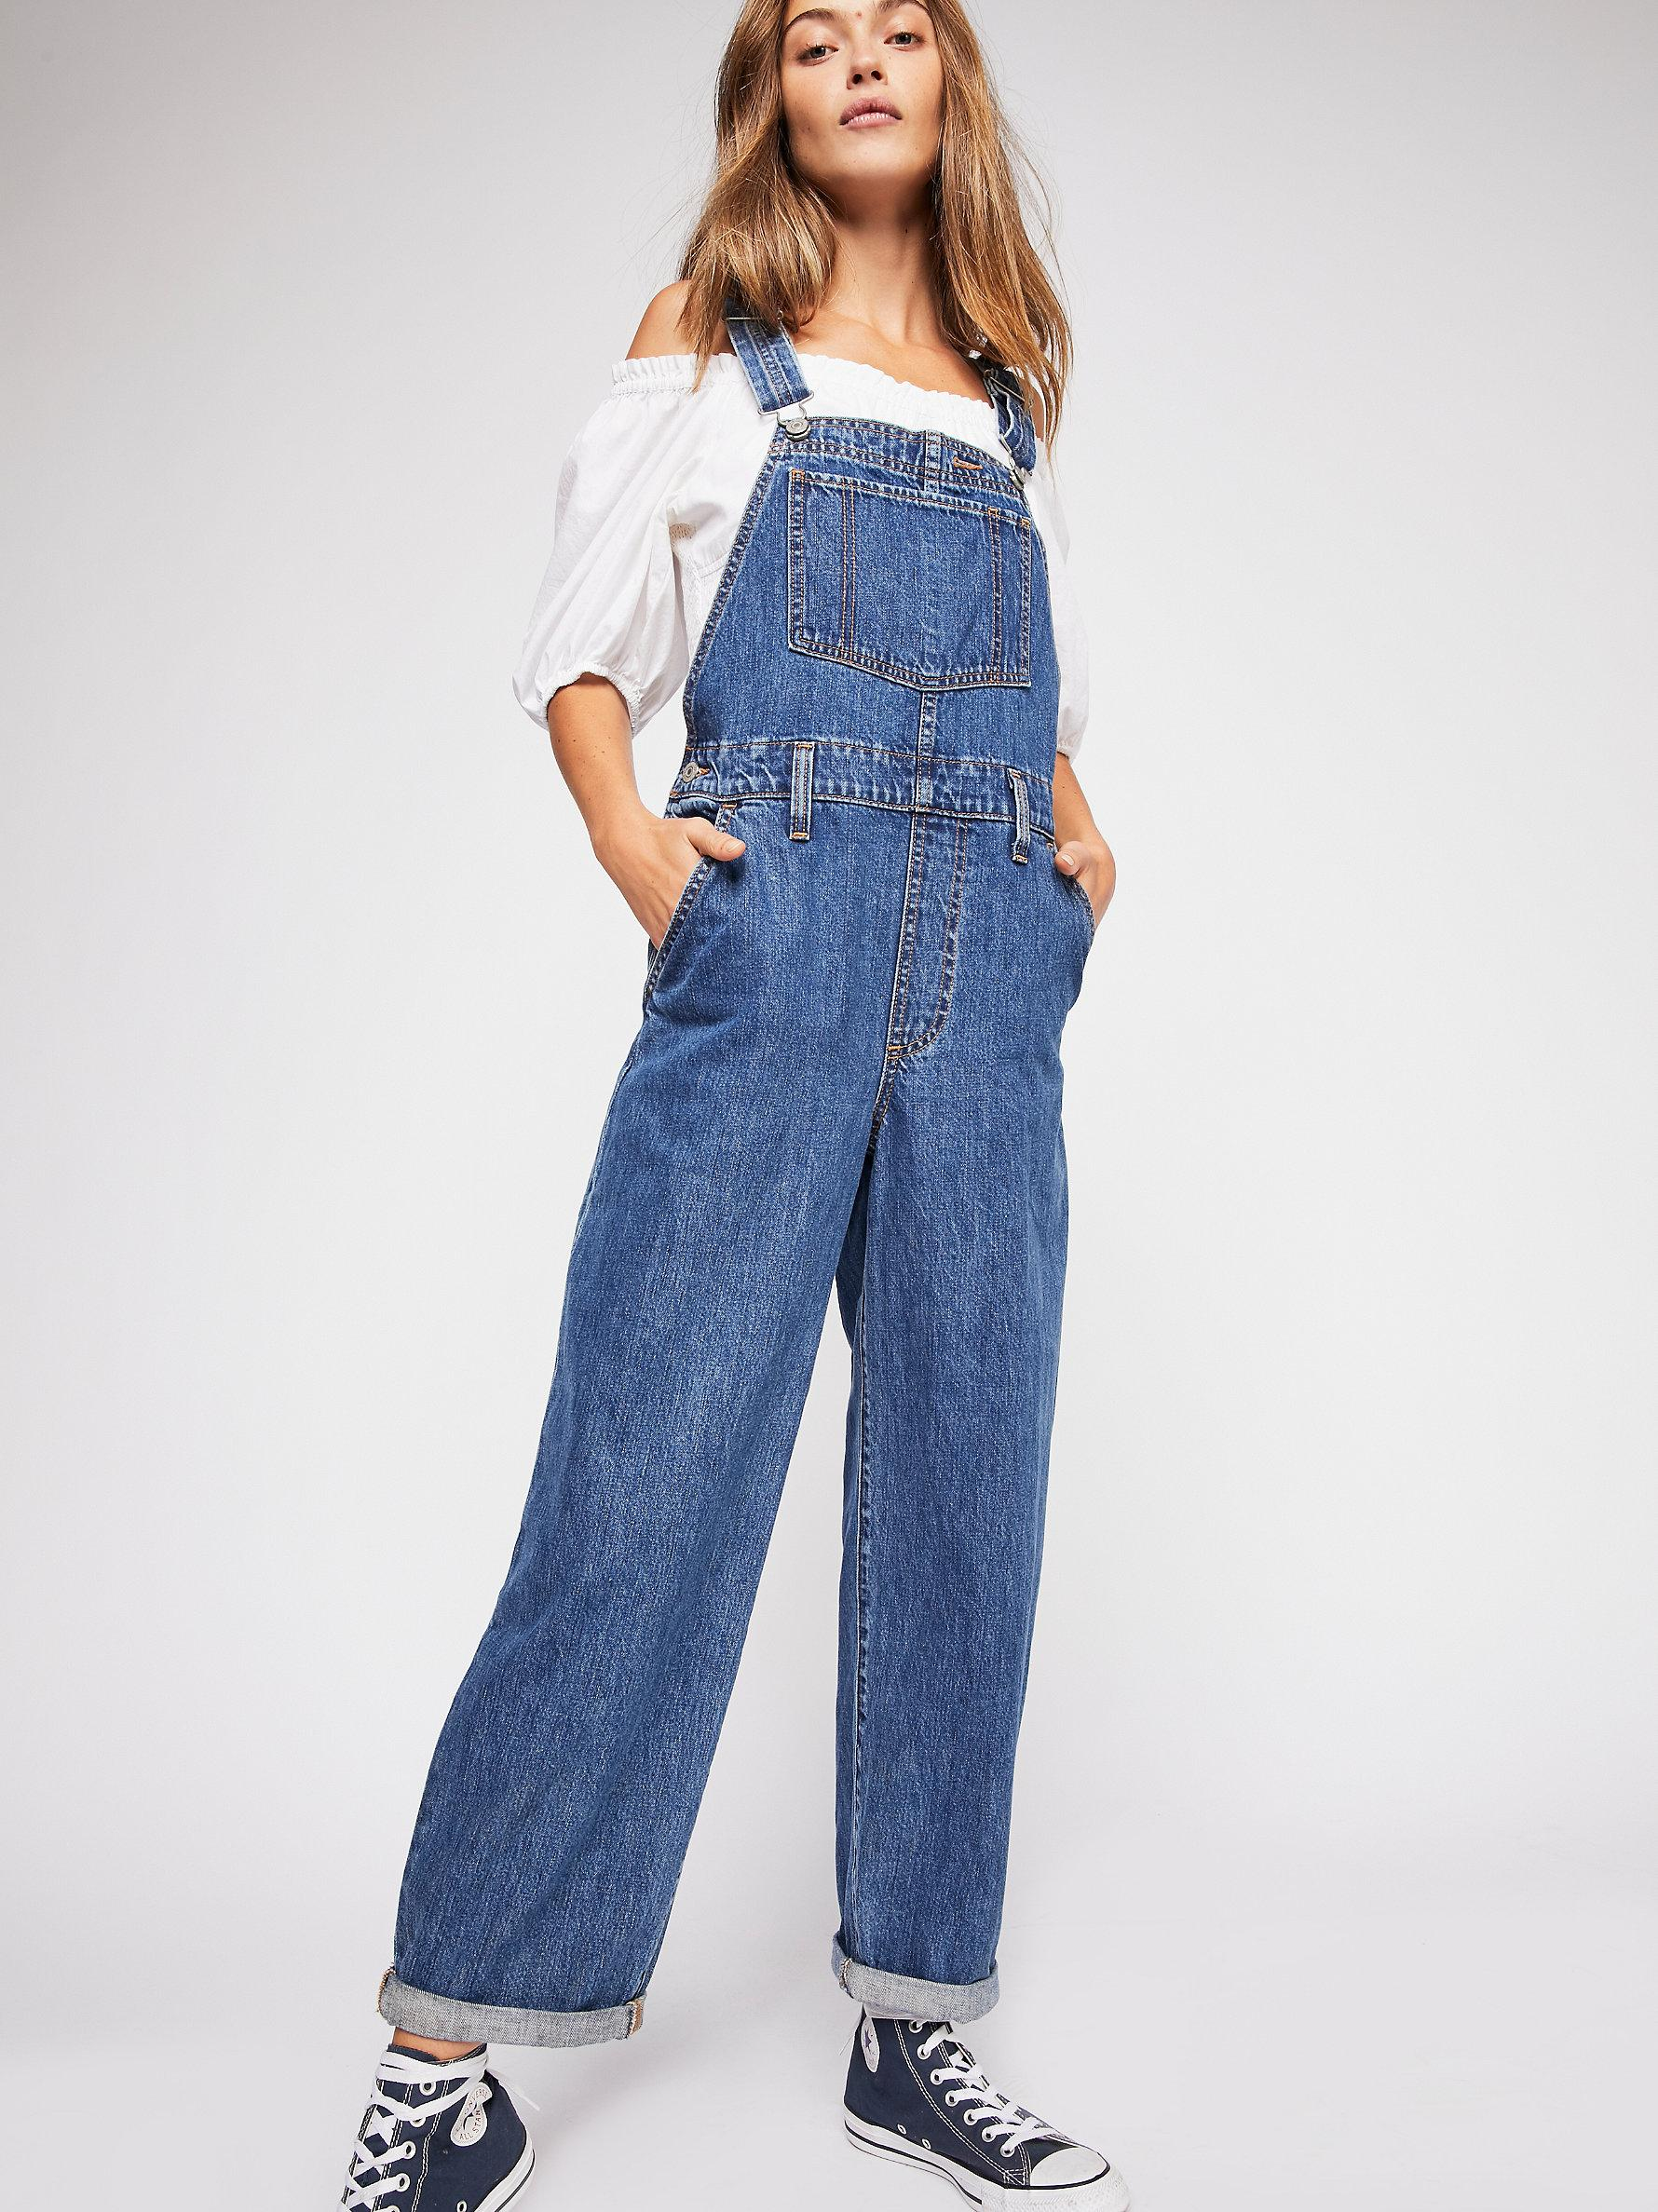 61fa013e9bd Free People Levi s Baggy Denim Overalls in Blue - Lyst